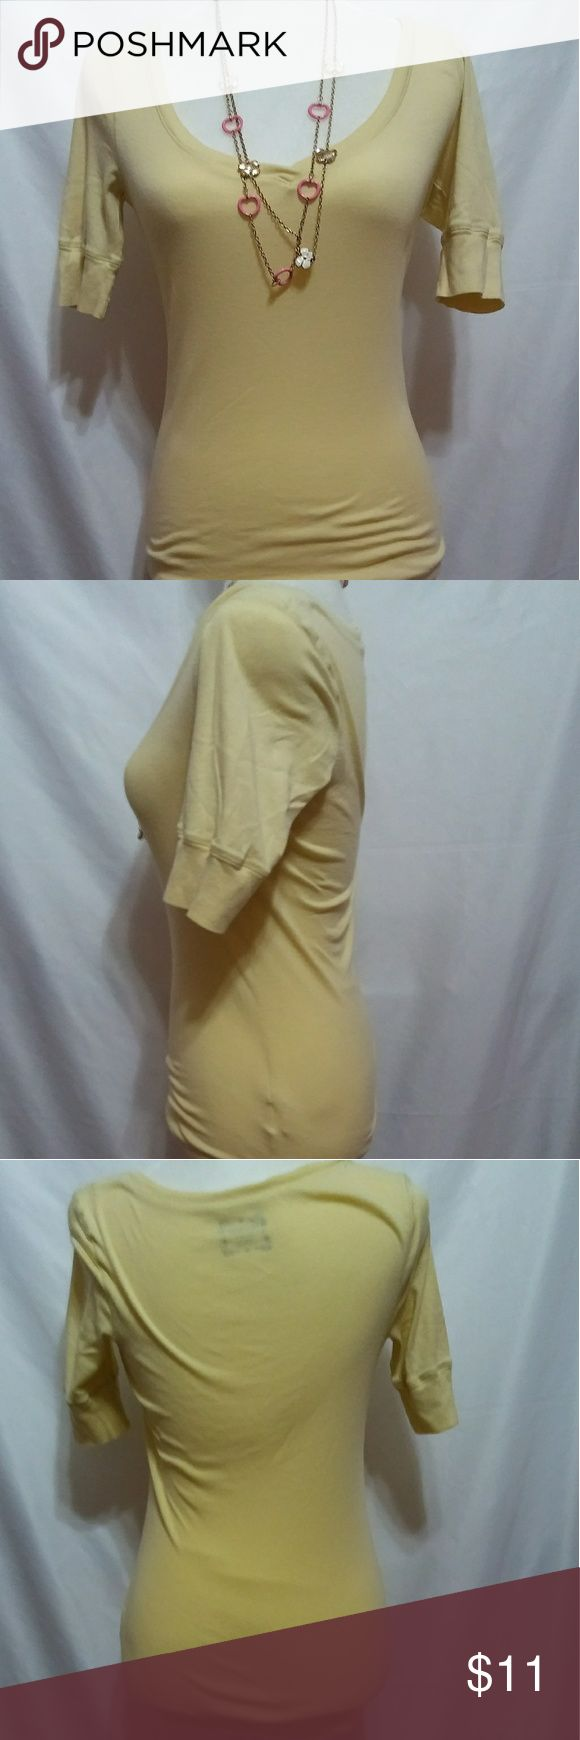 Old Navy yellow women's 3/4 sleeve shirt size m Old Navy yellow women's medium three-quarter length sleeve shirt. Measurements are 23 inches from collar to waist in the back sleeve length is 11 inches. All measurements taken from the back. Old Navy Tops Tees - Long Sleeve